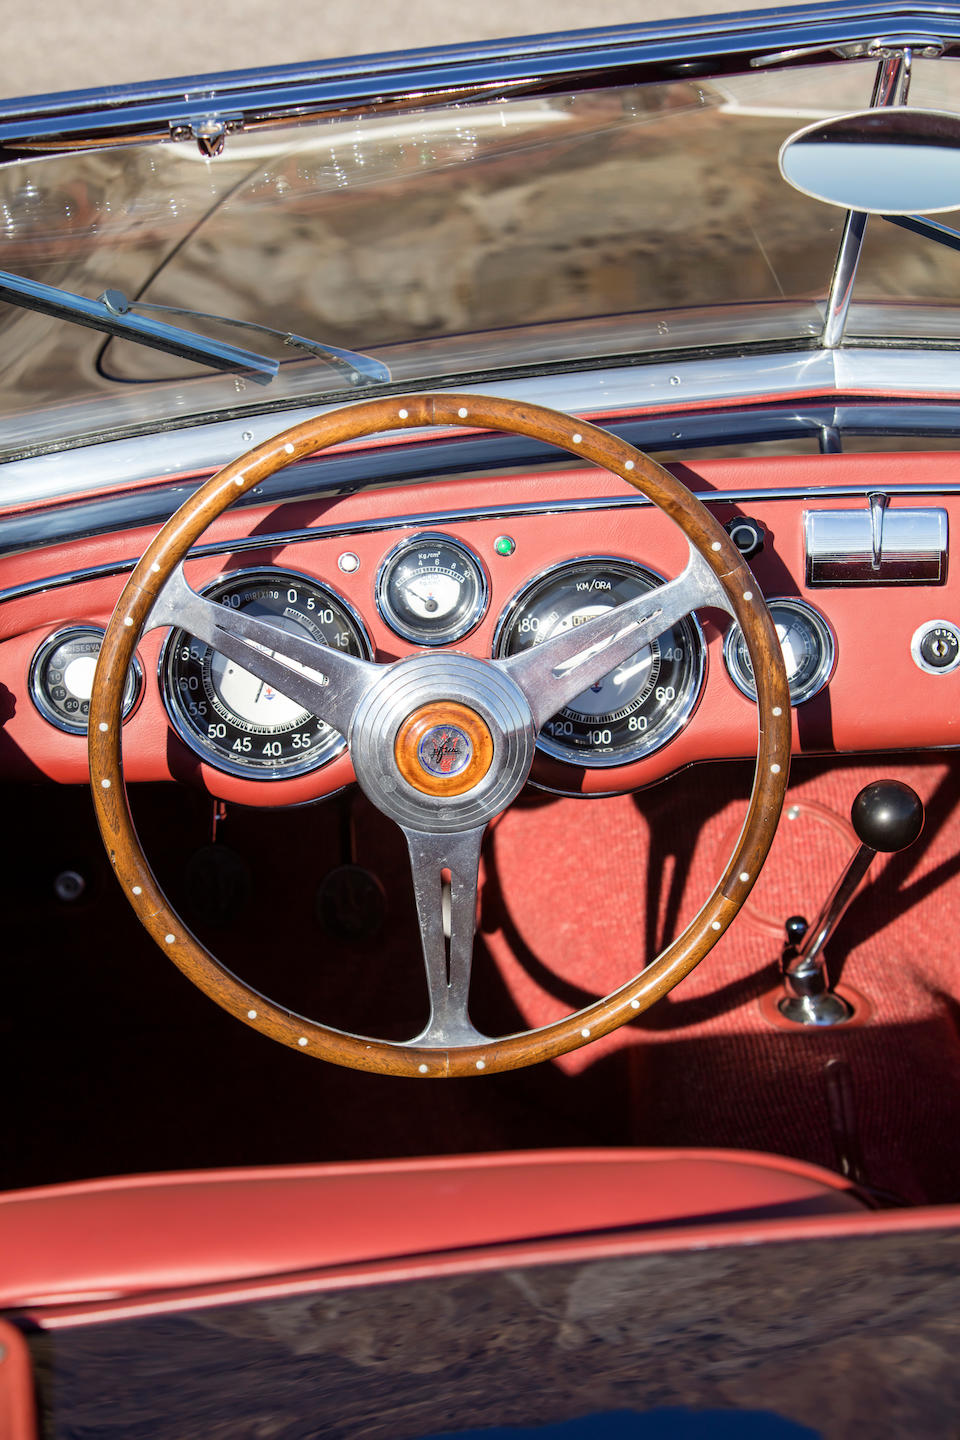 <b>1951 Maserati A6G/2000 Spider</b><br />Chassis no. 2017<br />Engine no. 2013 (See text)